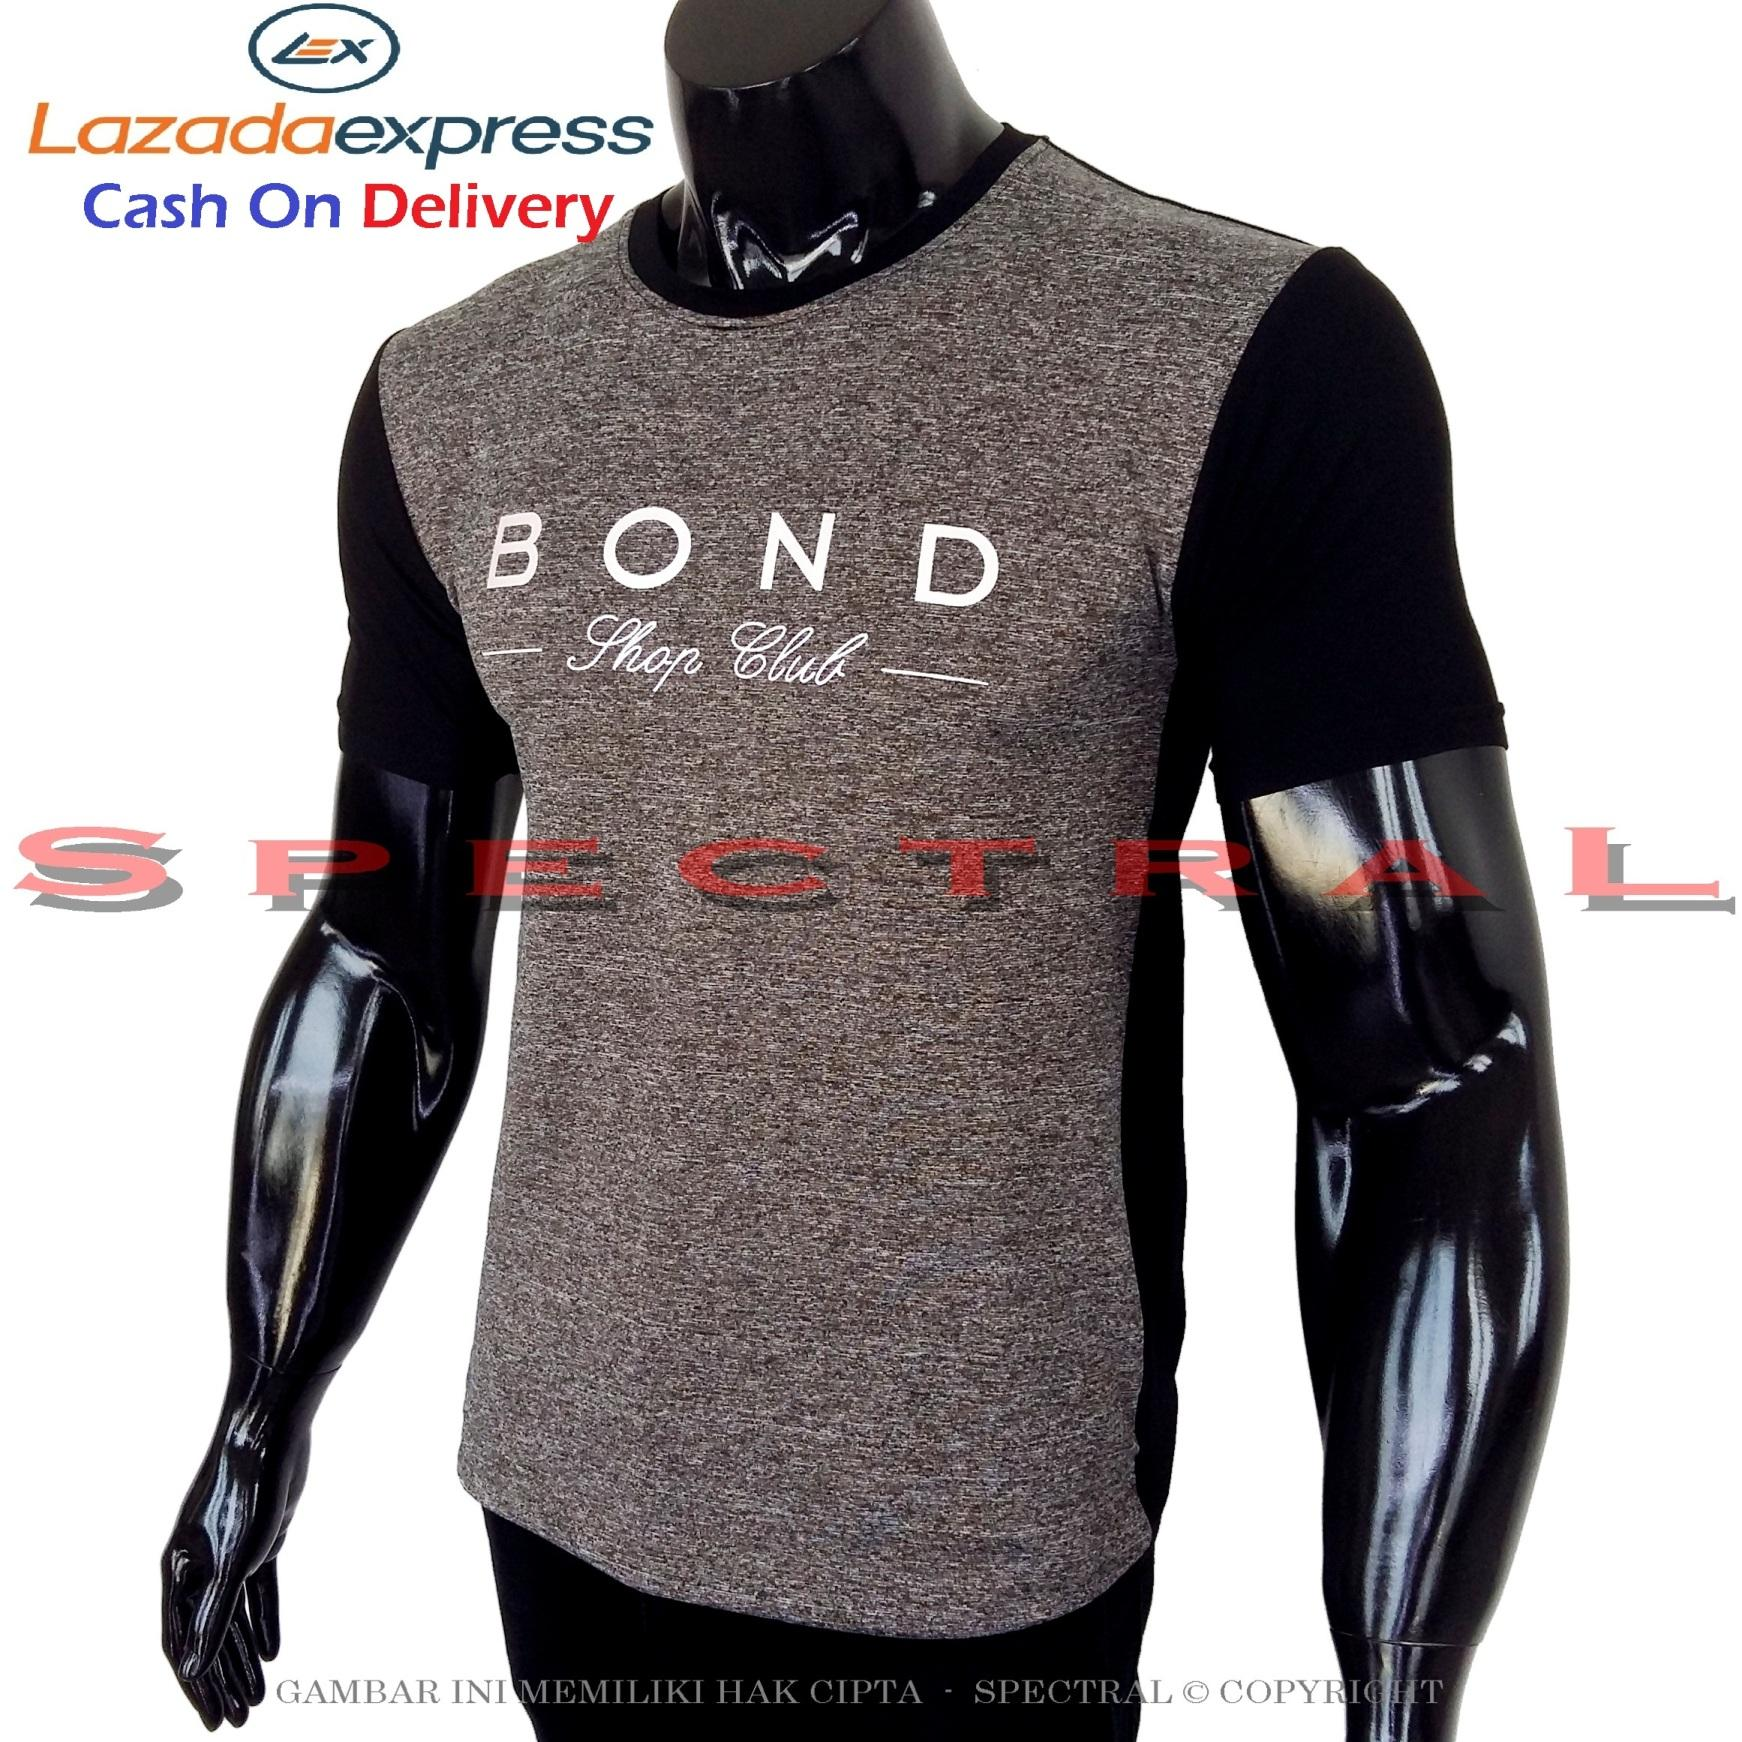 Spectral - Kaos Distro BOND Paris  Soft Rayon Viscose Lycra Pola M Fit To L Simple Fashionable Tidak Pasaran